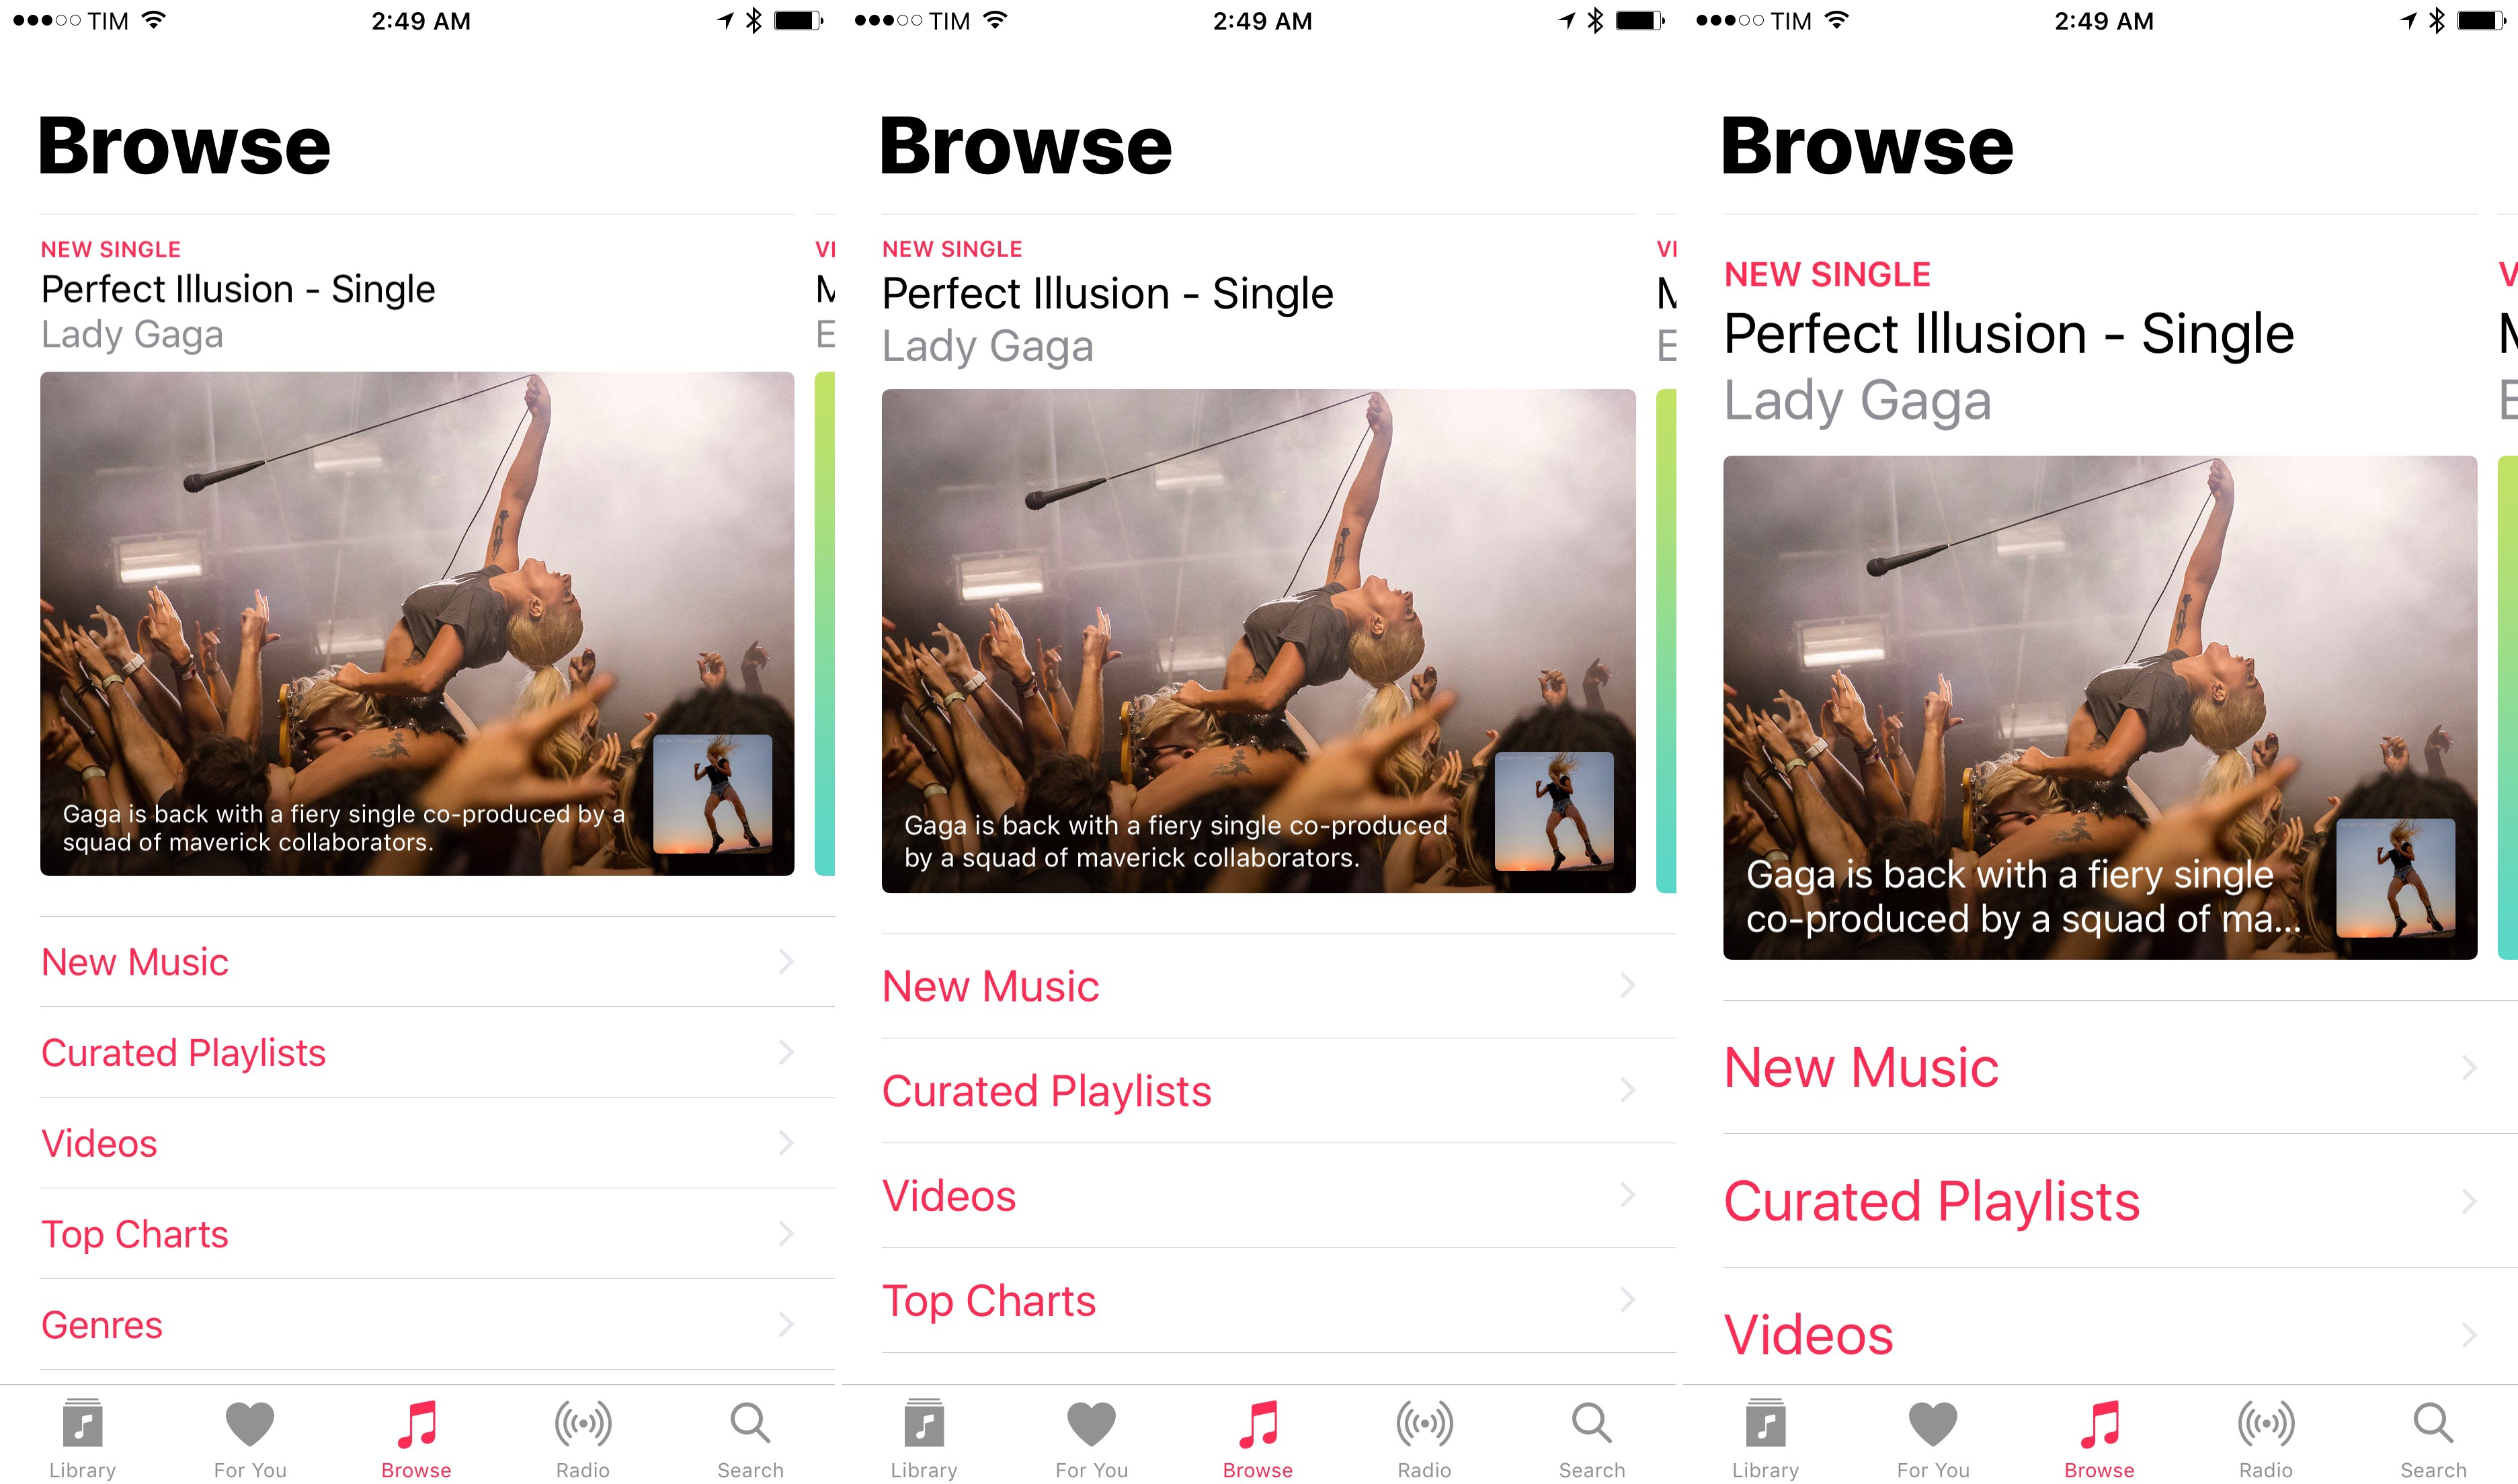 Dynamic Text and Apple Music's new design.